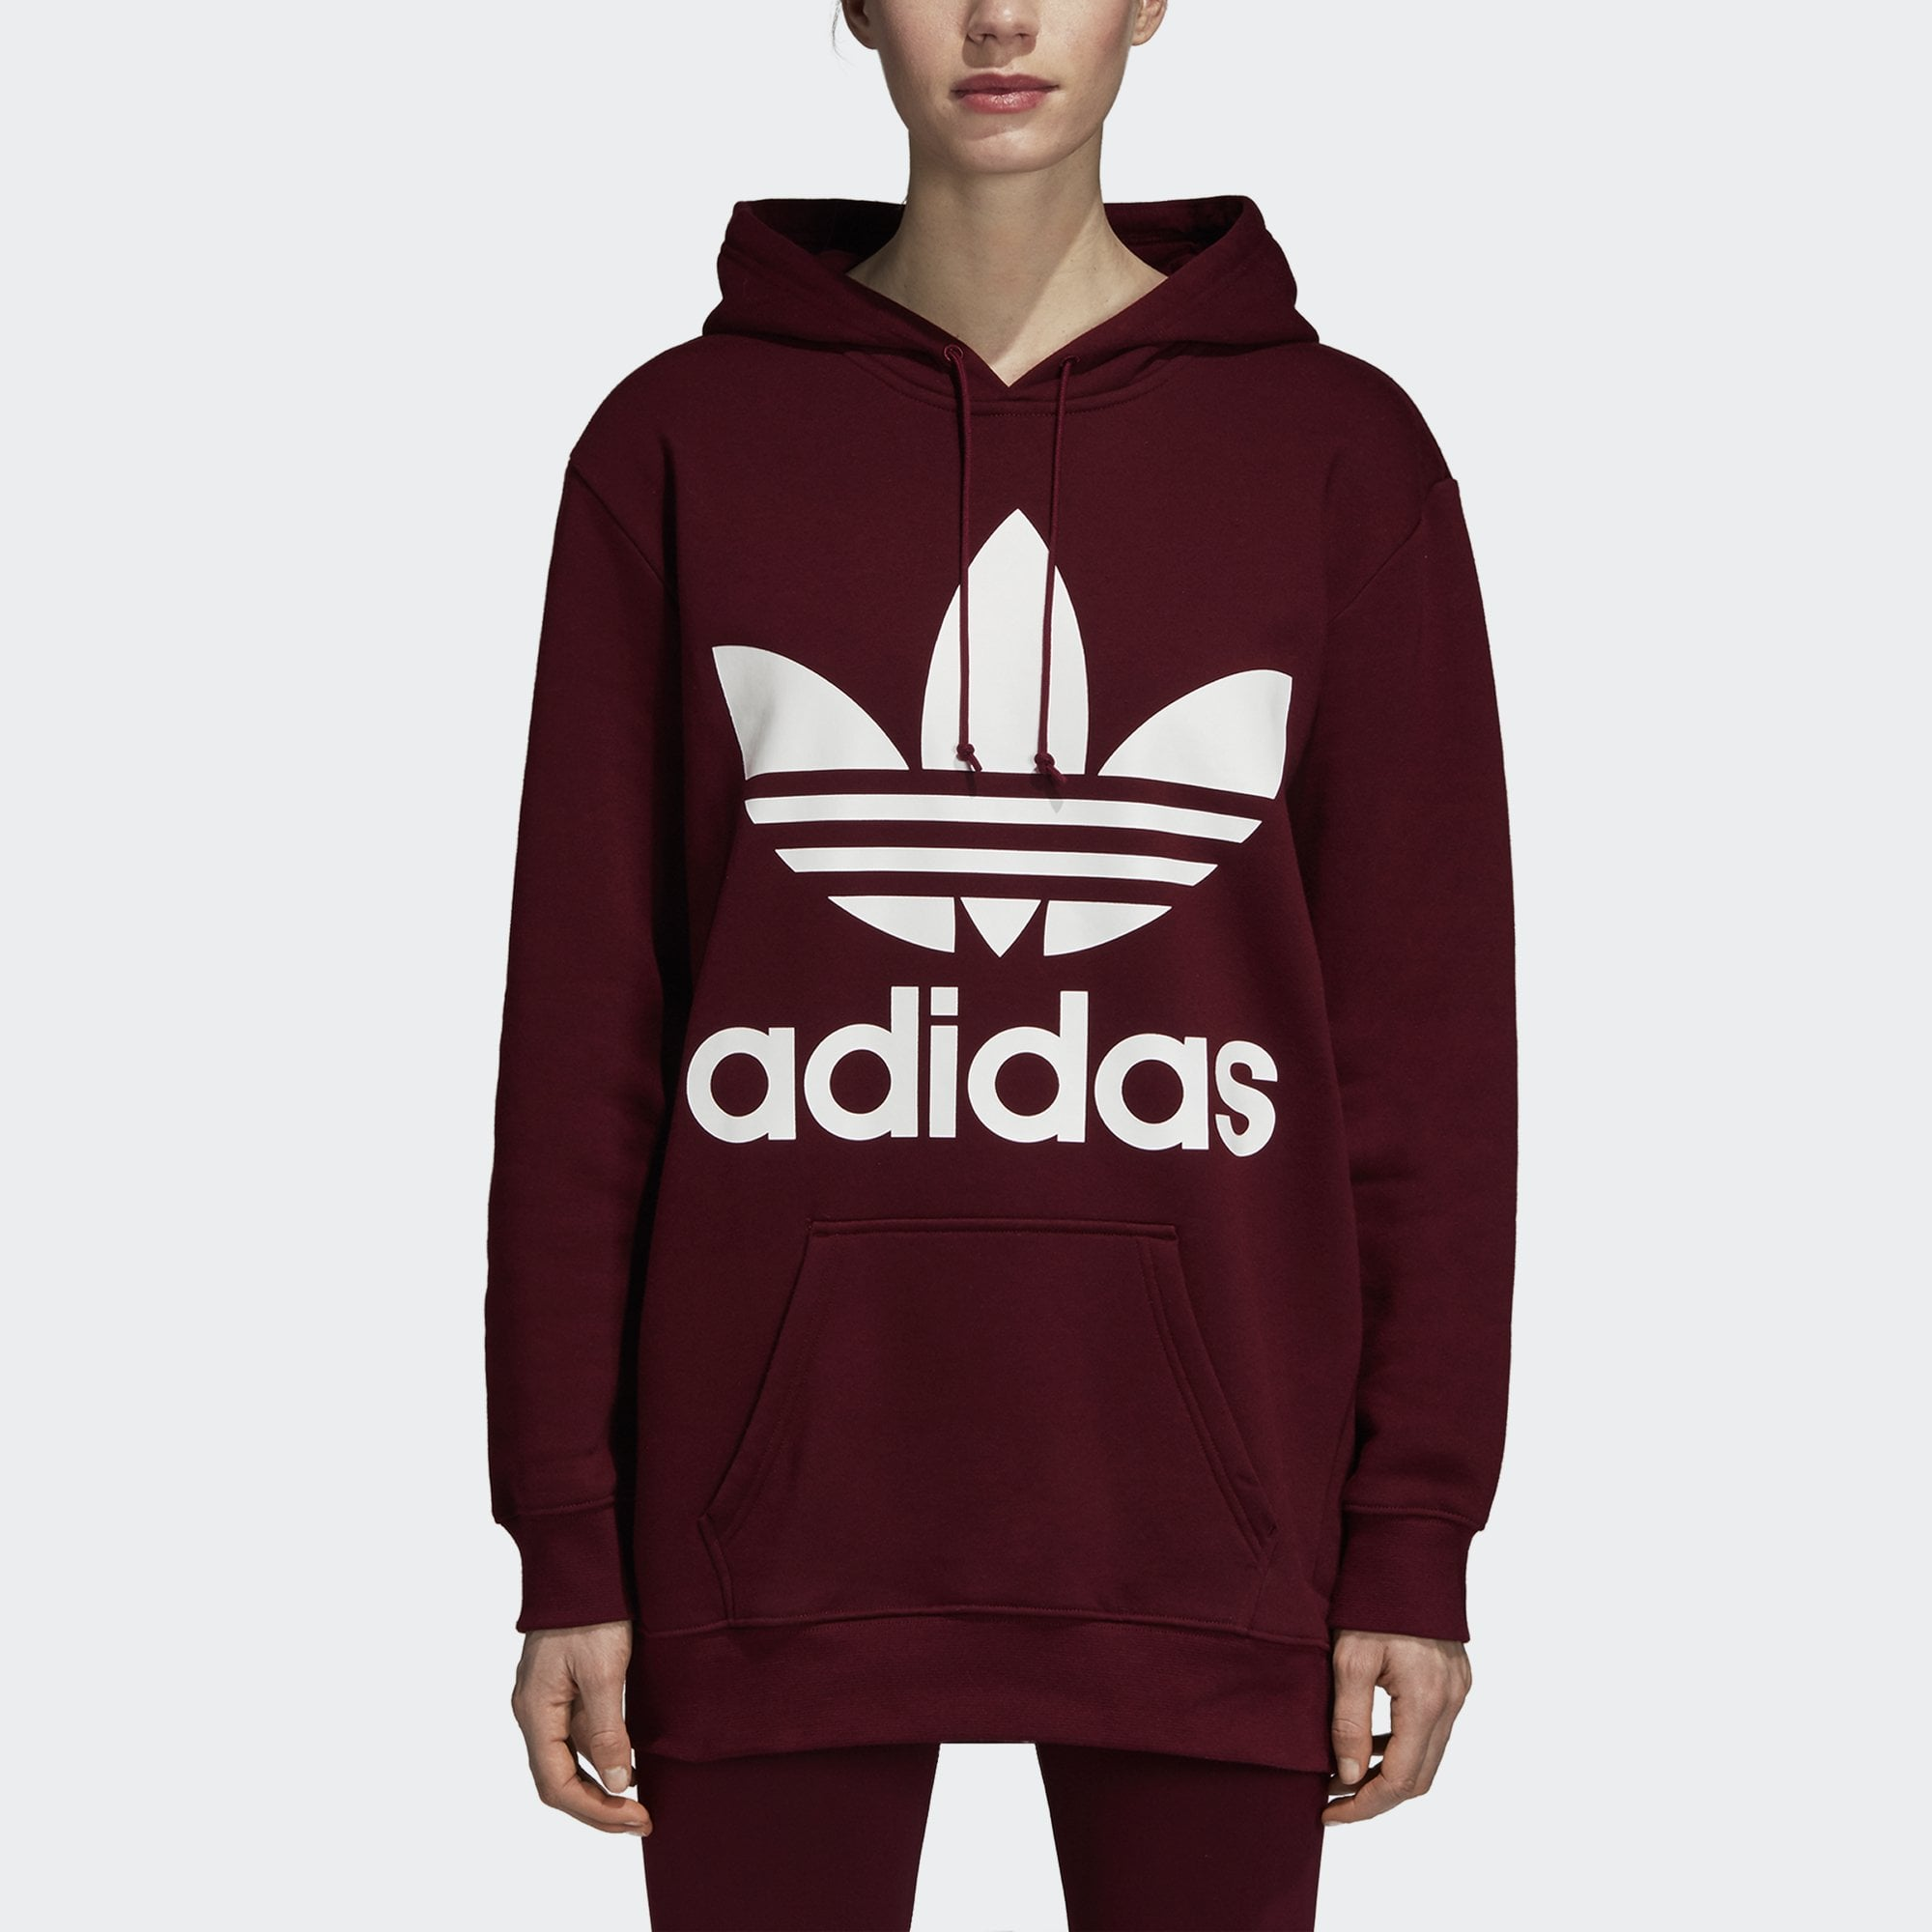 adidas Originals Women/'s Trefoil Hoodie Relaxed Fit Hooded Sweashirt Red /& White